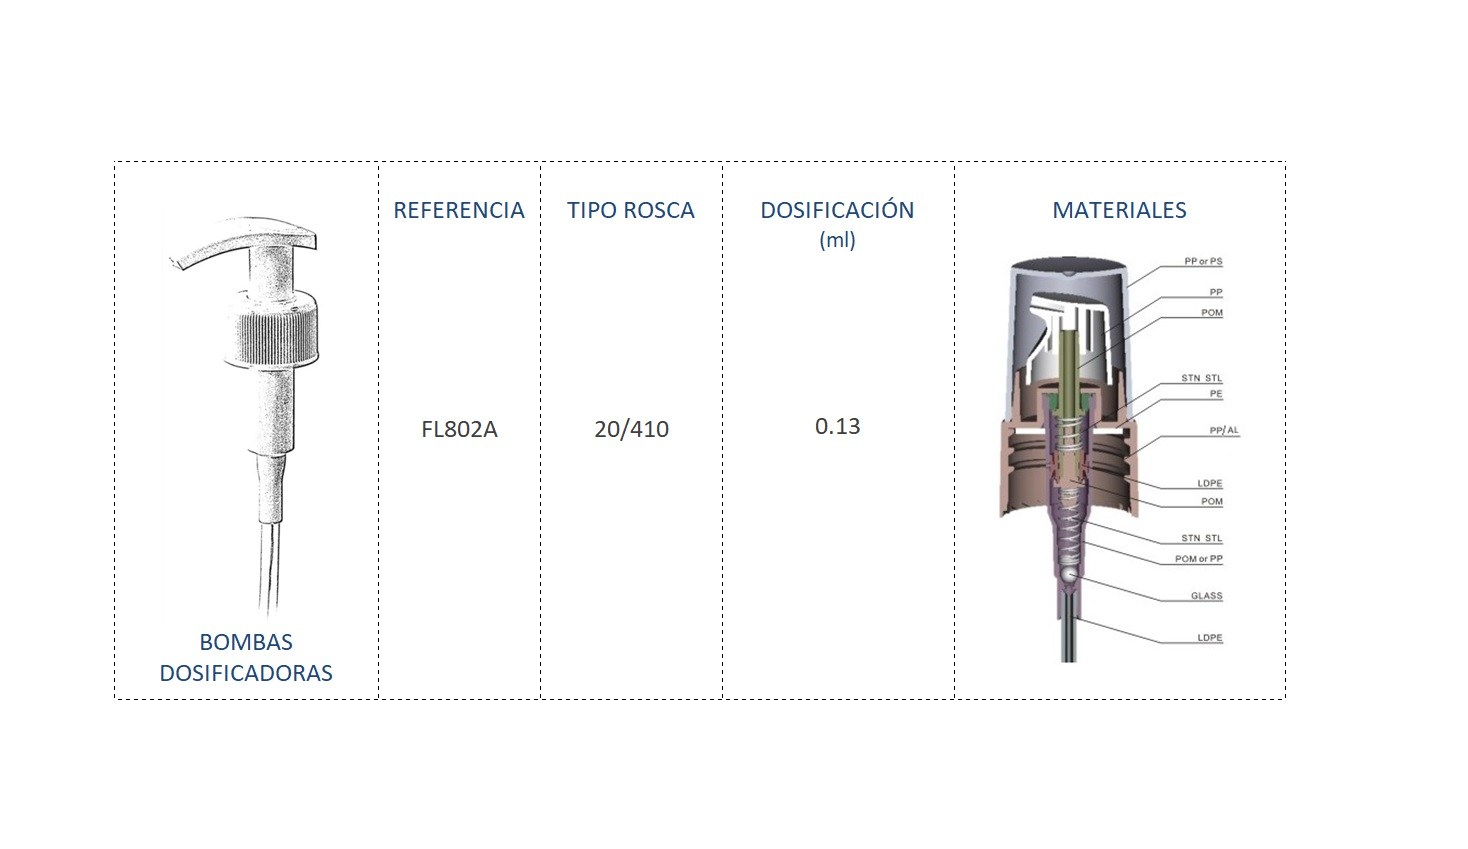 Cuadro materiales bomba dispensadora FL802A 20/410